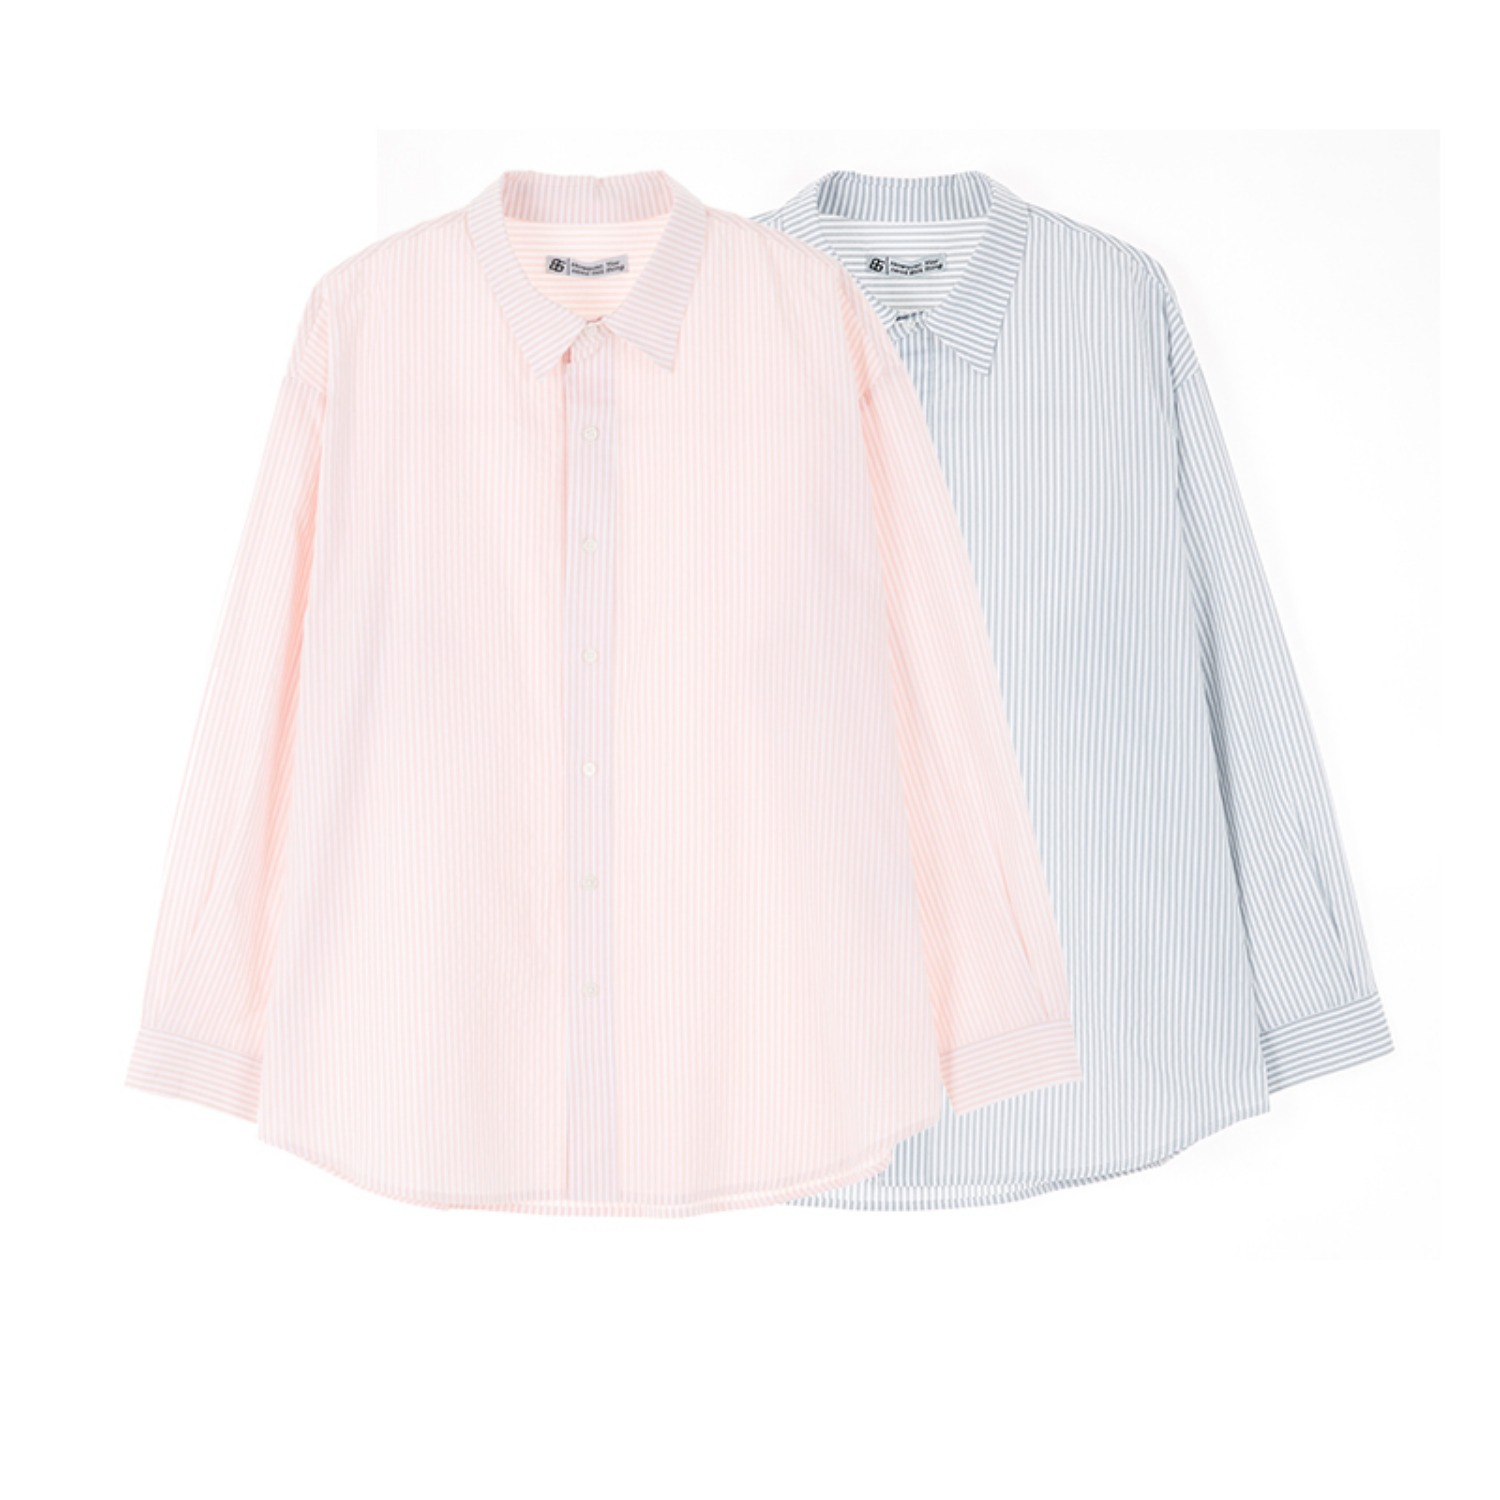 BREEZE STRIPE SHIRTS (GREY, PINK)